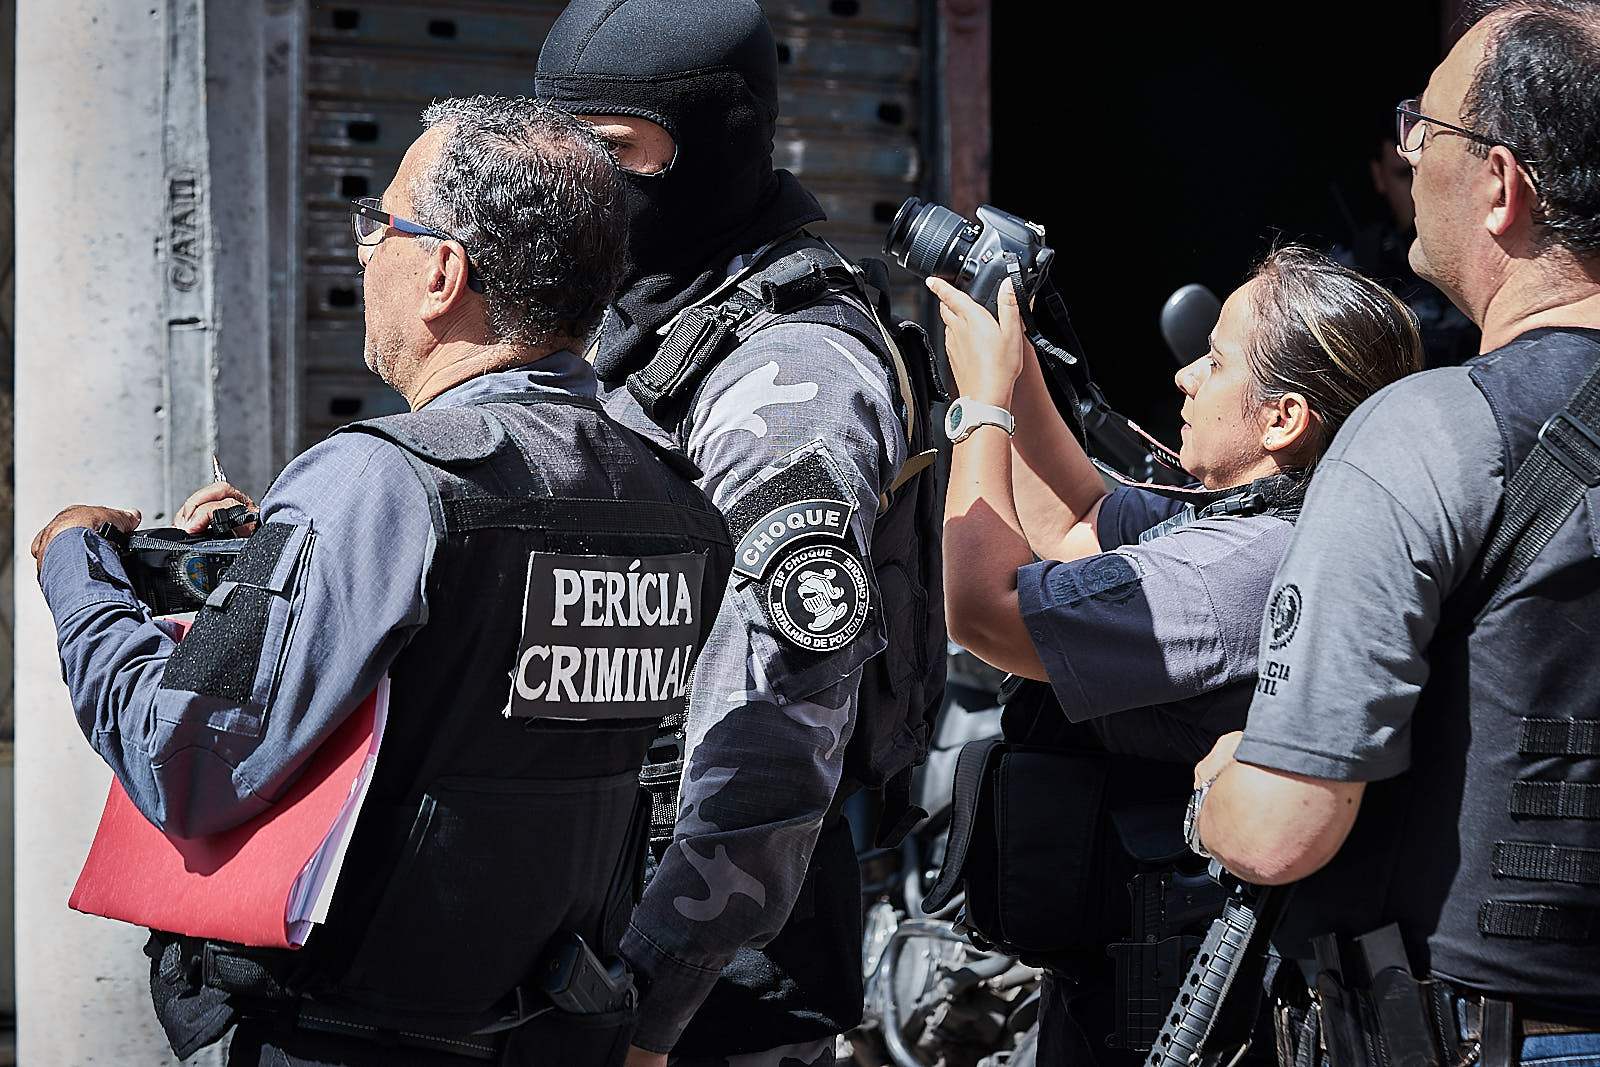 A member of Rio's Choque battalion guides investigators through the events that happened leading up to the killing of nine alleged traffickers in a house in Rio de Janeiro. (Photo C.H. Gardiner)